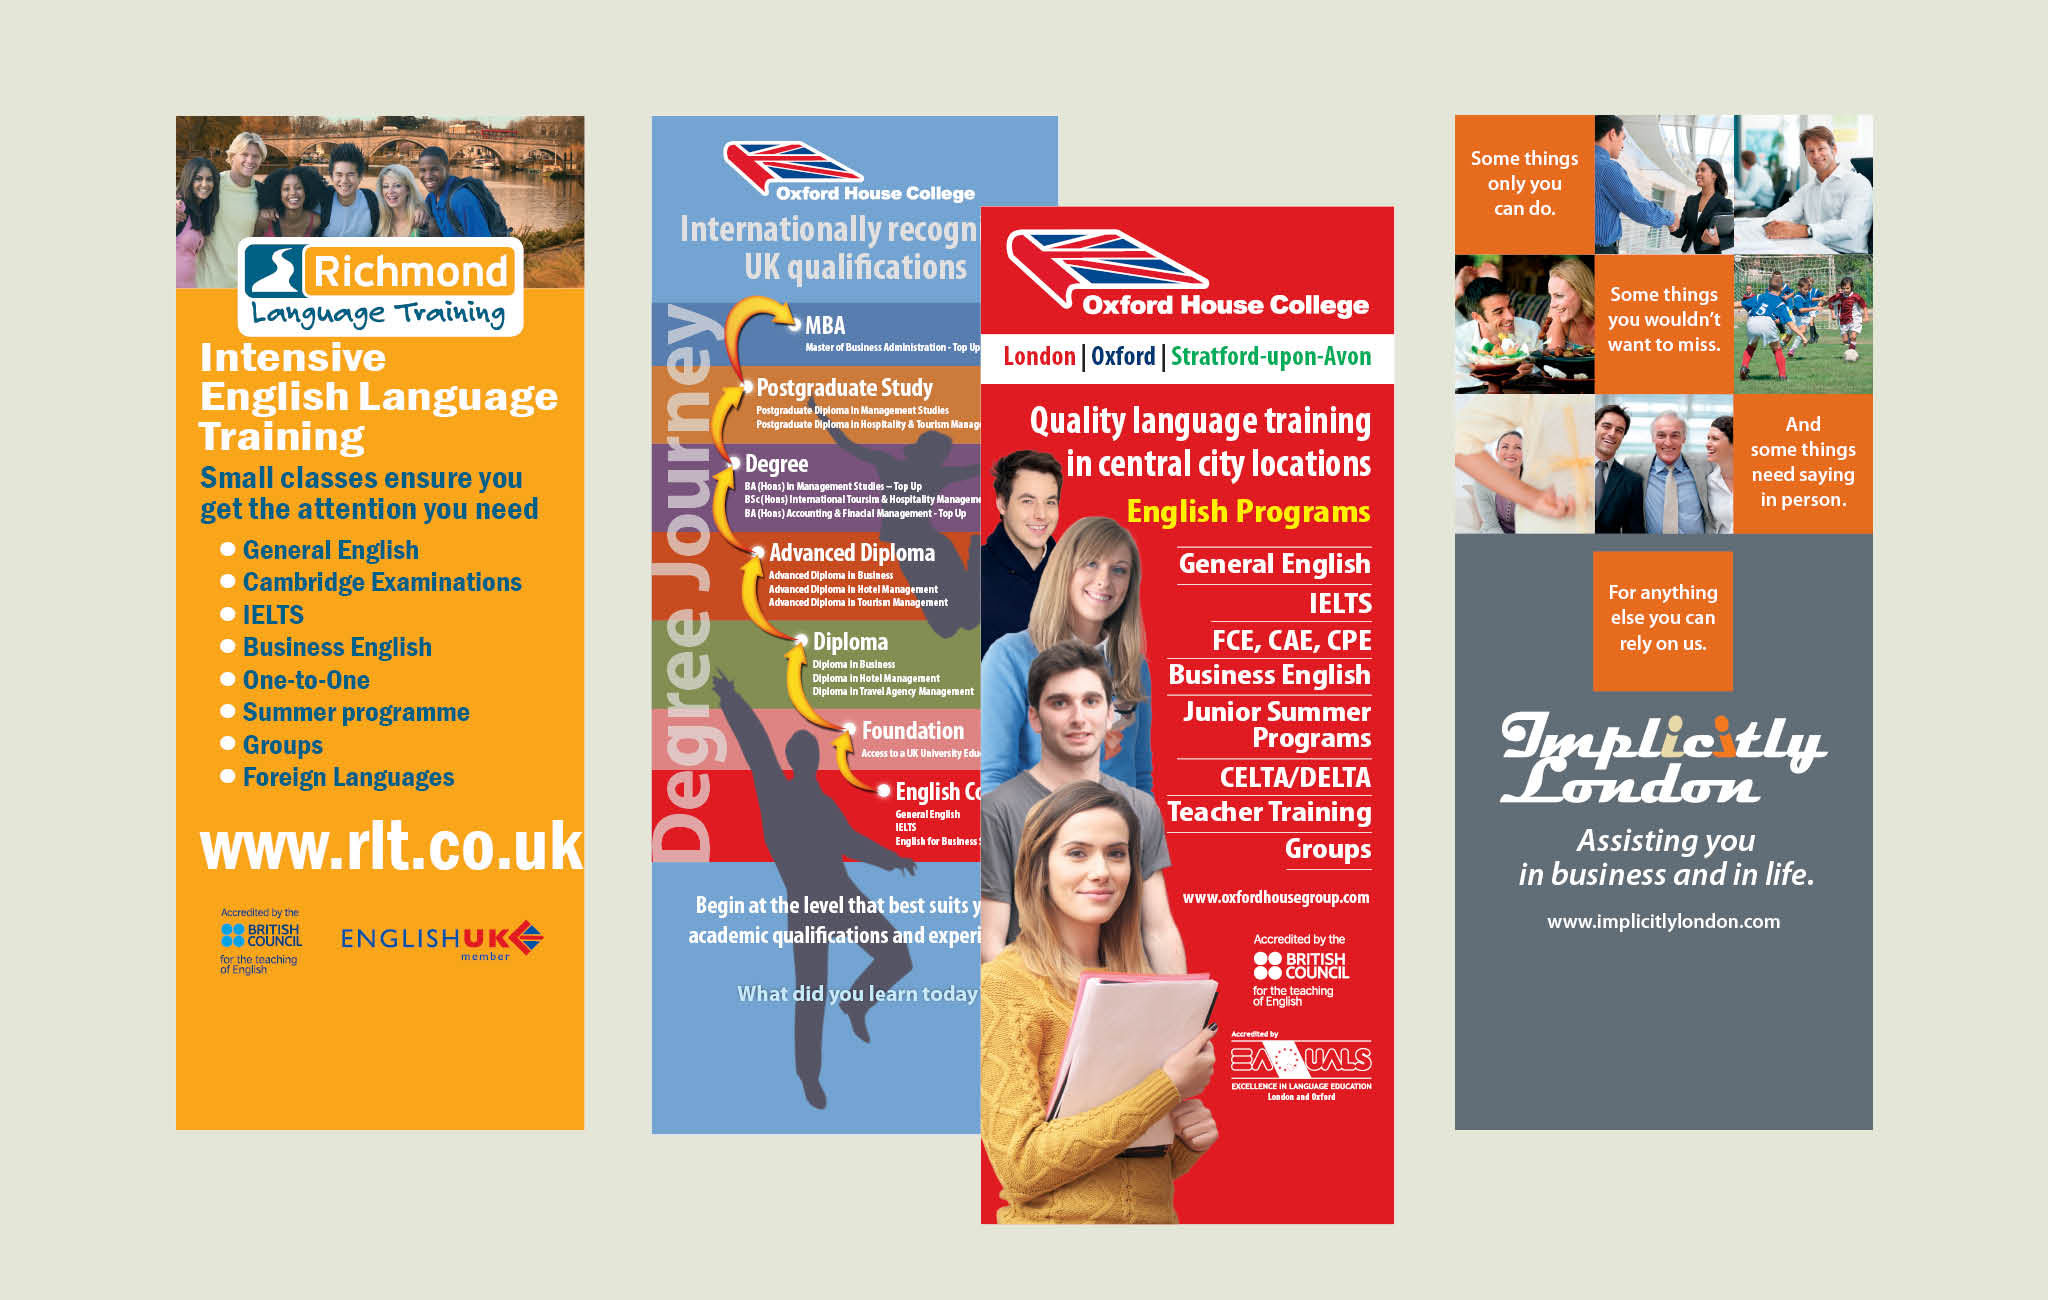 Corporate Identity management for Oxford House College